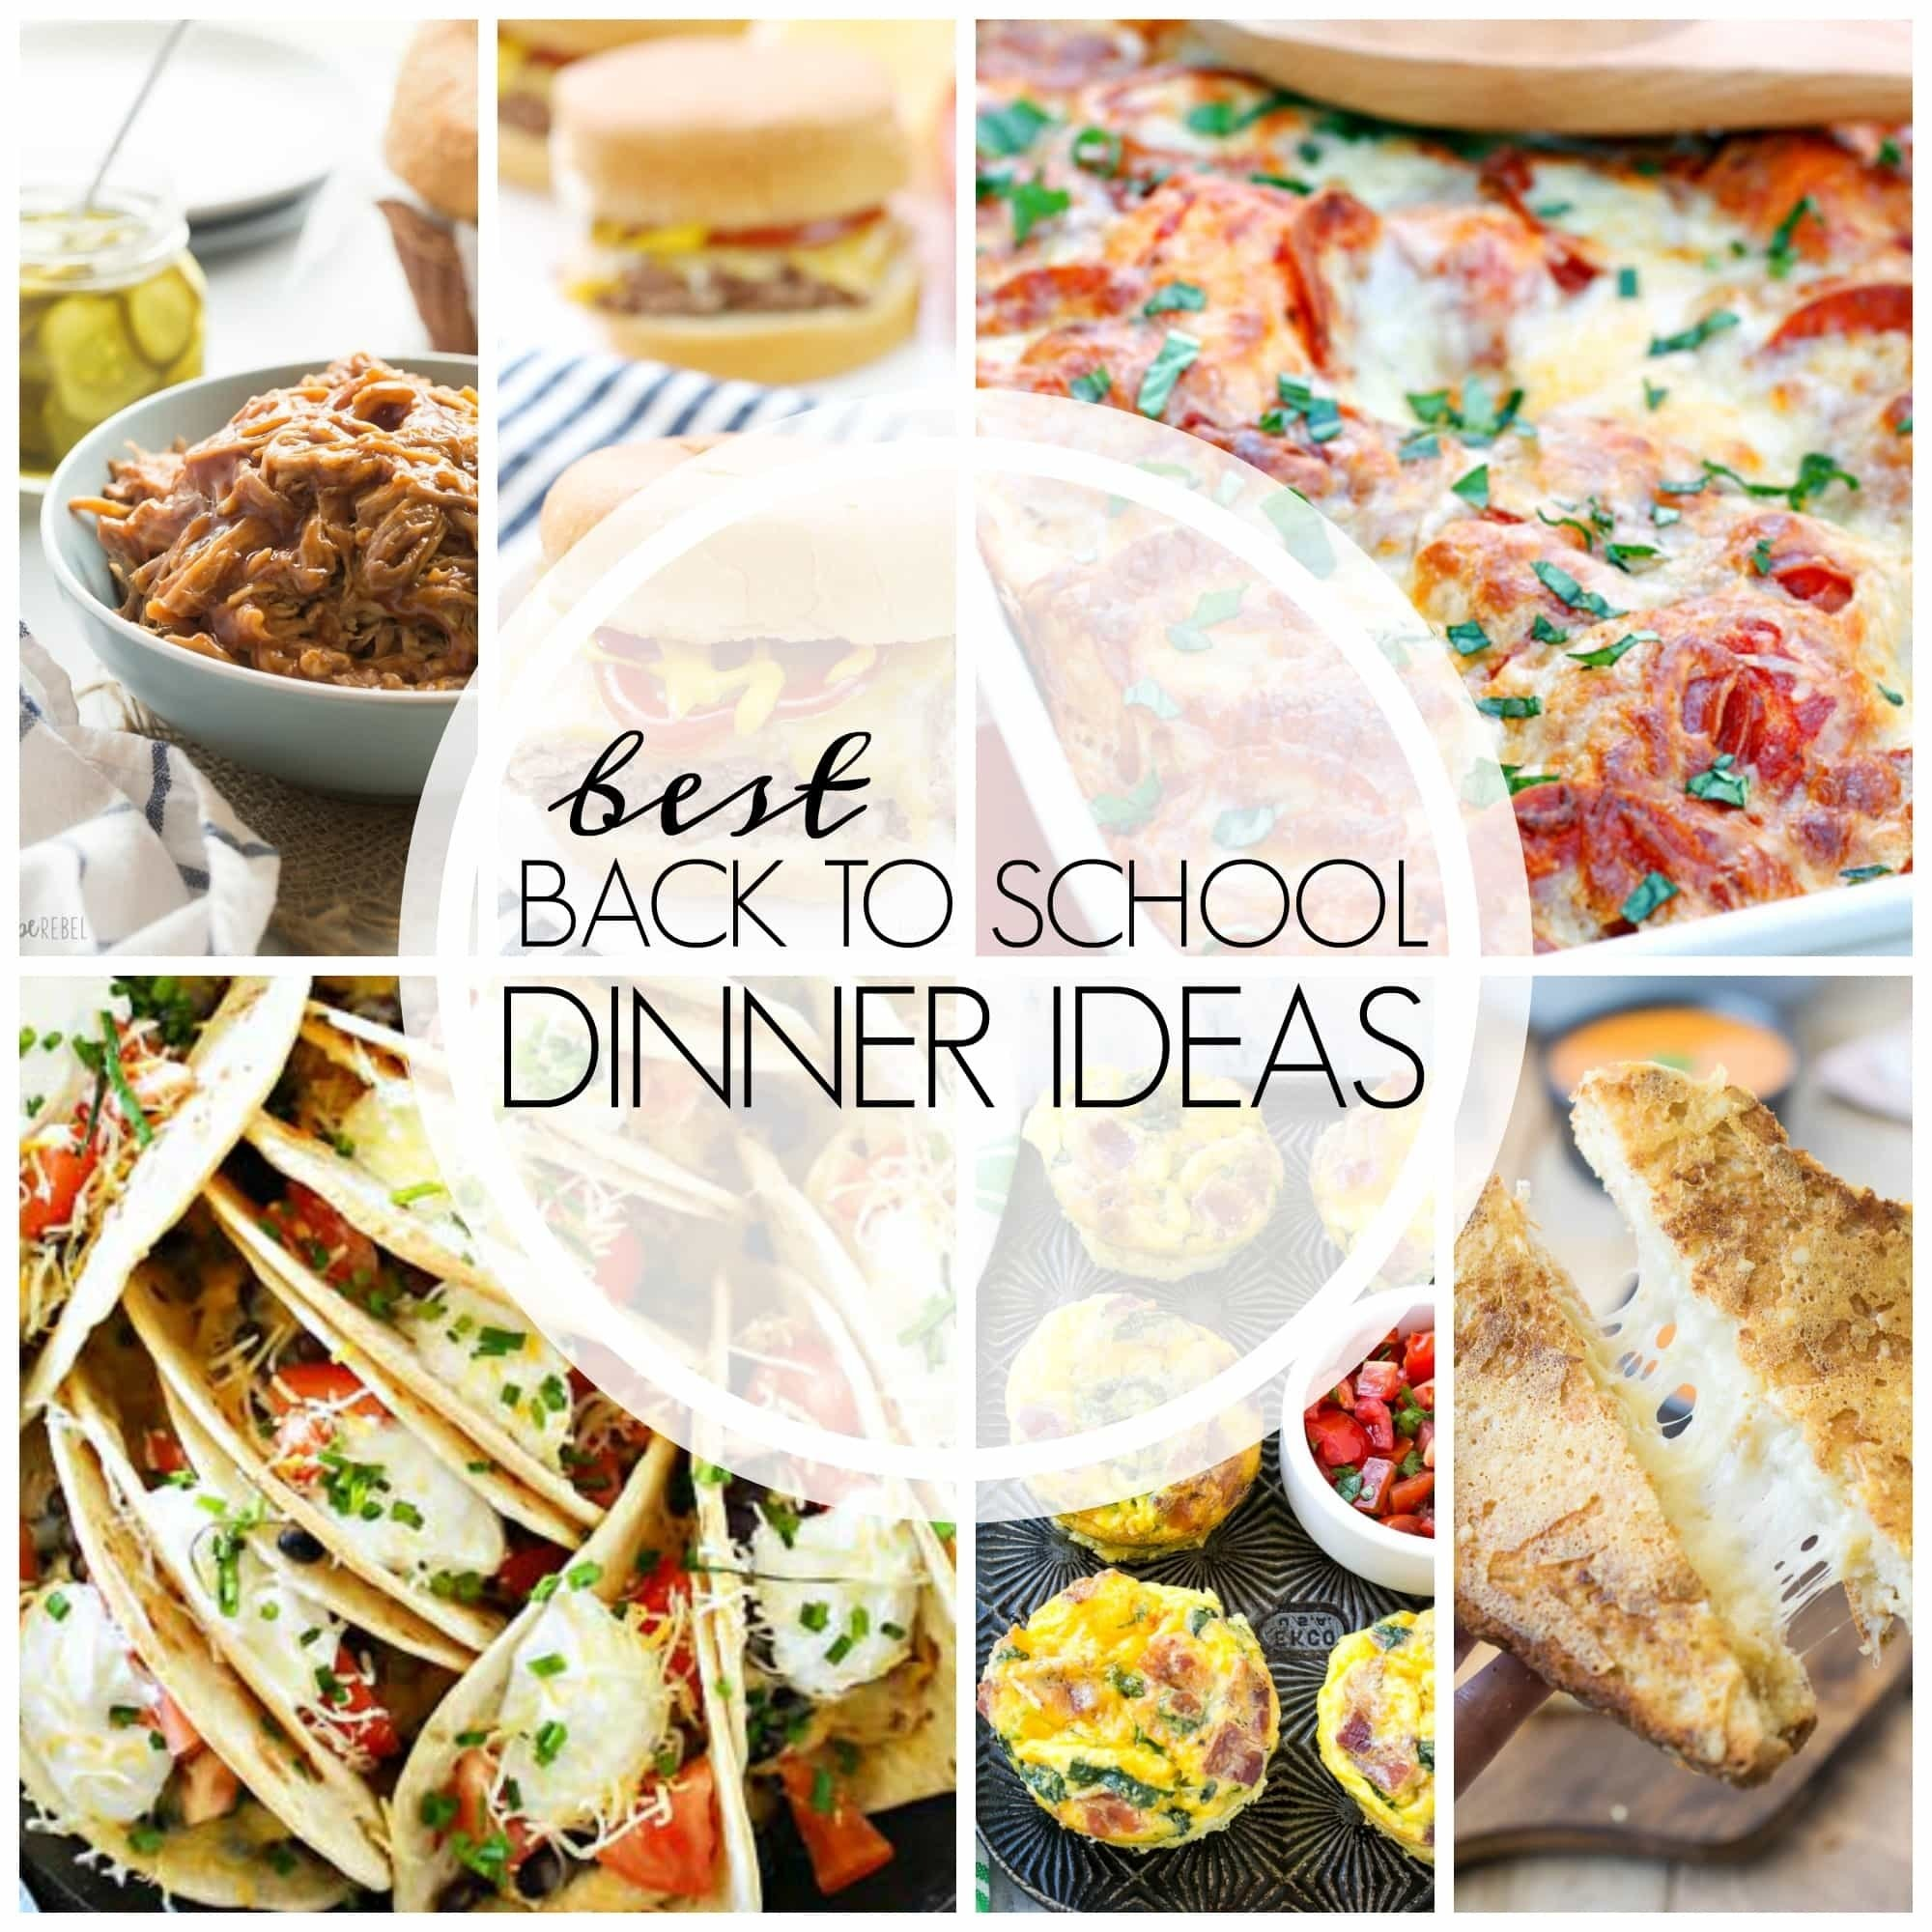 10 Attractive Easy Dinner Ideas For Family easy dinner recipes 20 family friendly ideas self proclaimed foodie